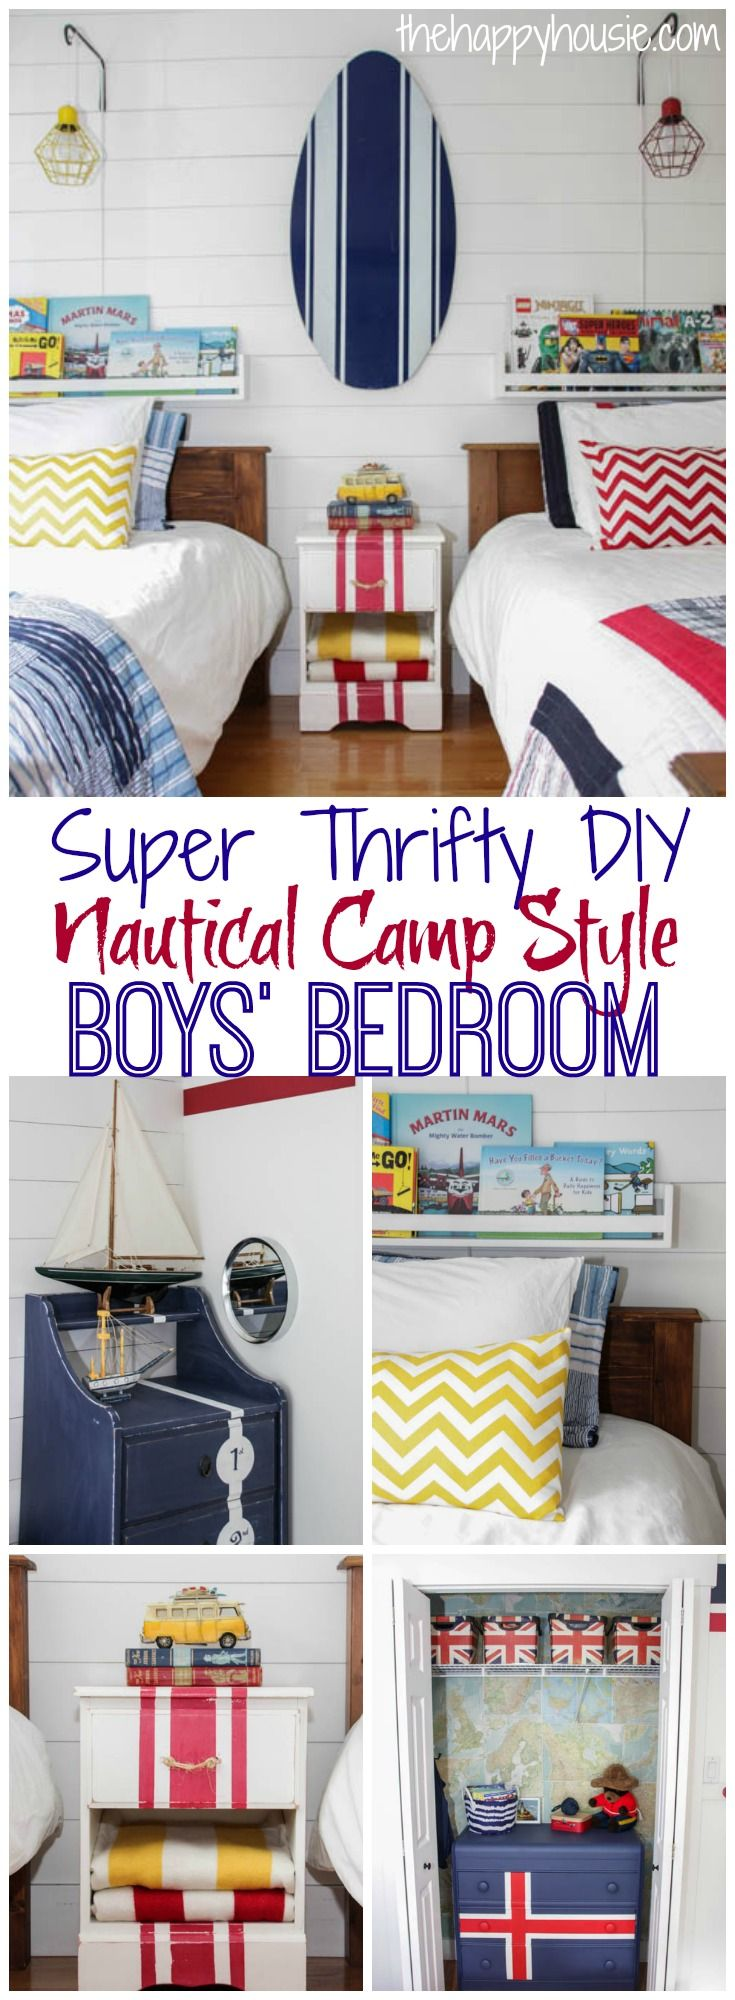 Frugal tips for organizing kids rooms thrifty nw mom fresh bedrooms - Our Boys Bedroom Reveal It Is Finally Here